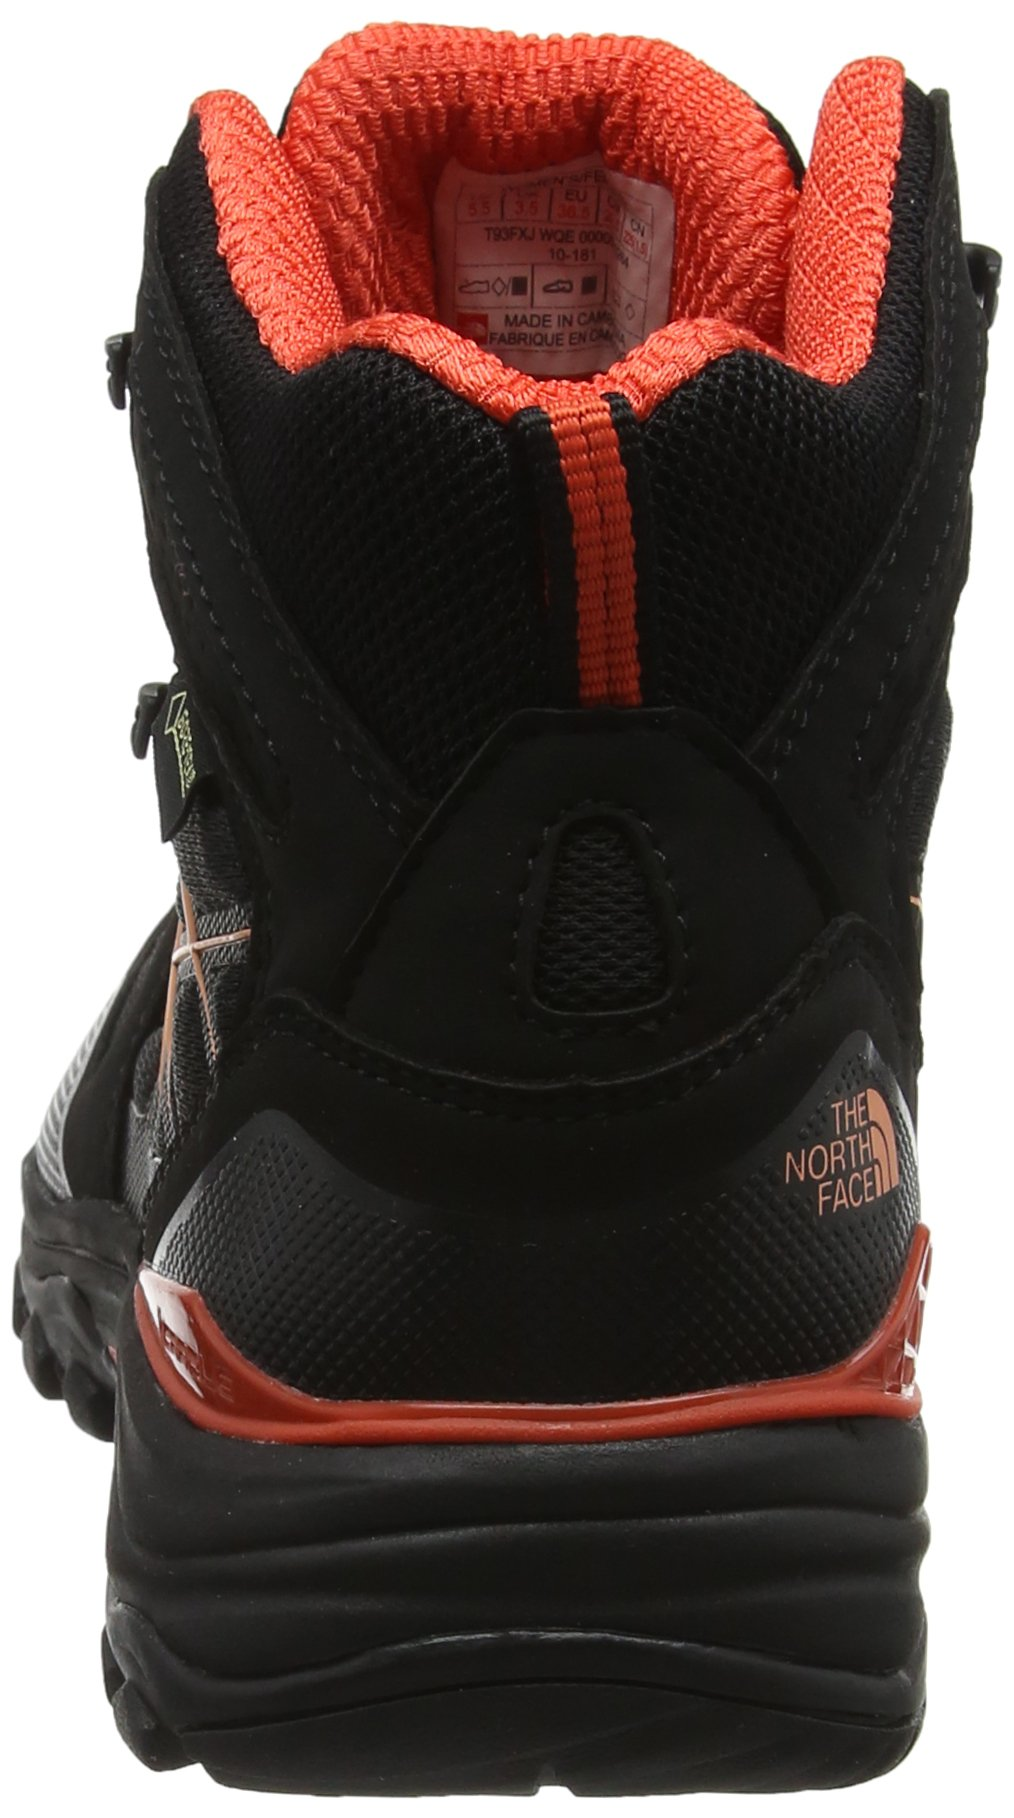 71RamRuVG3L - THE NORTH FACE Women's Hedgehog Fastpack Mid GTX High Rise Hiking Boots